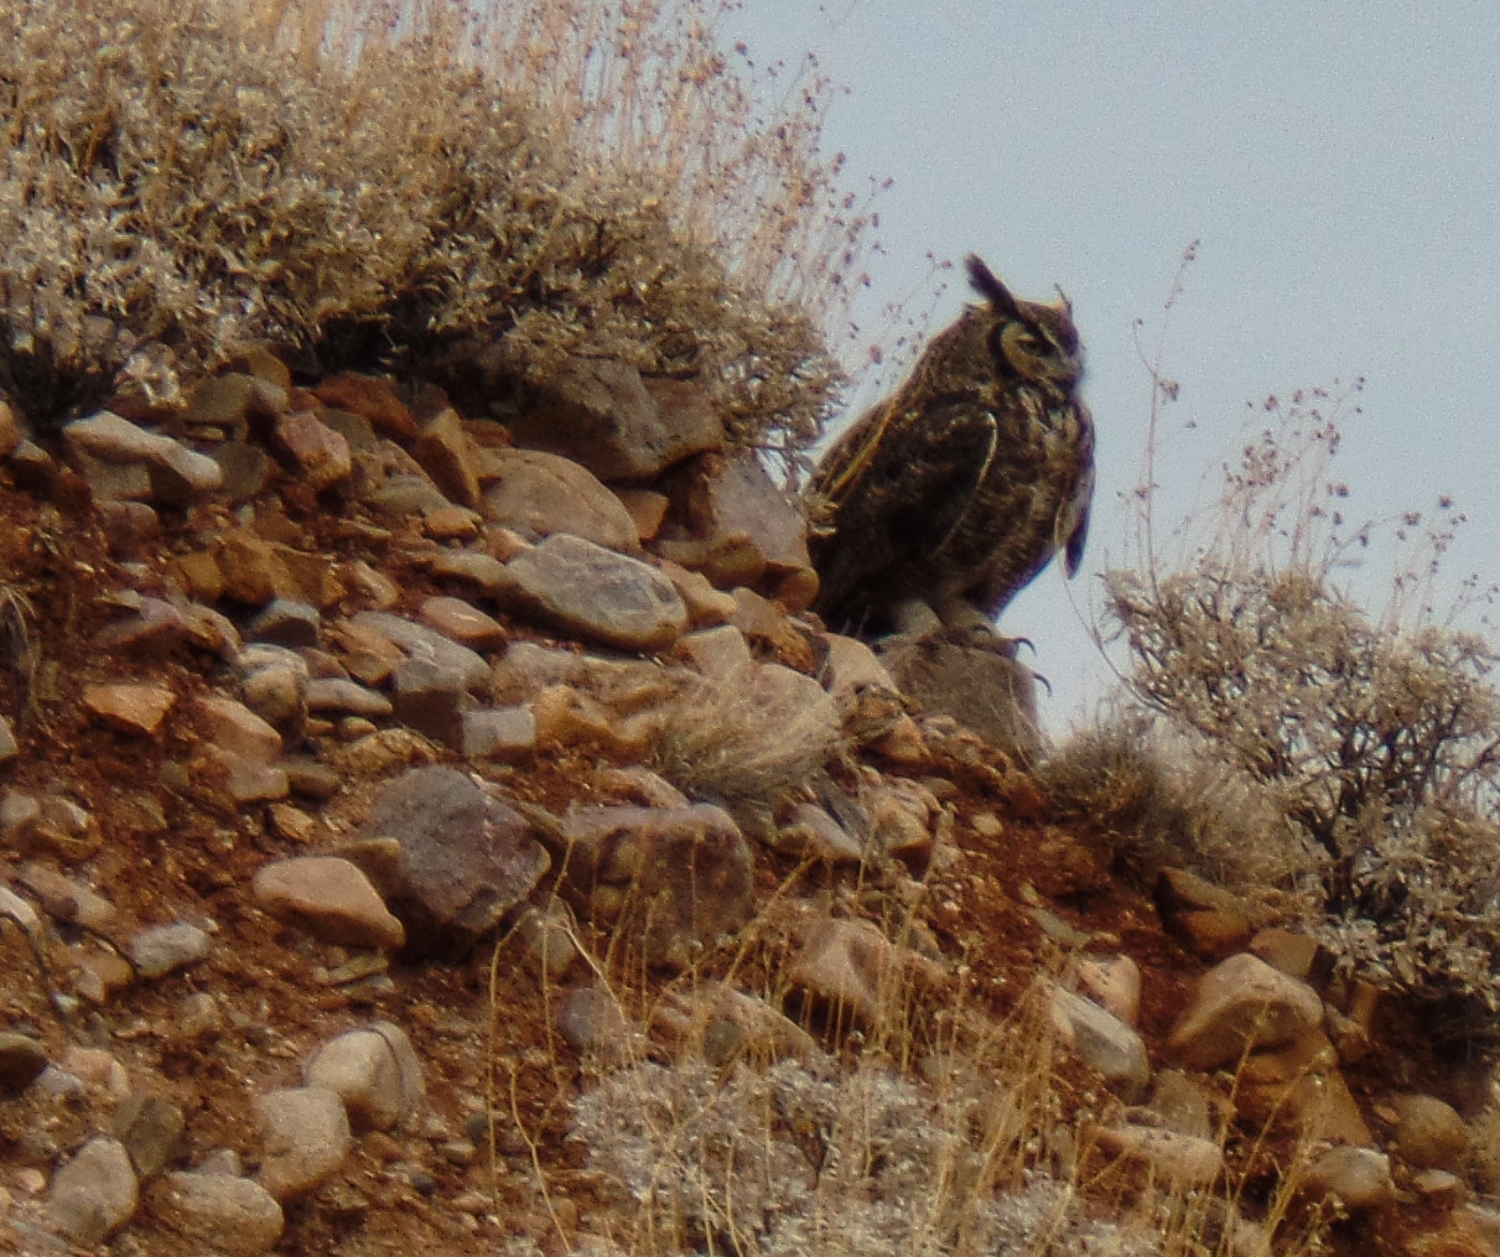 First photo of the owl on the hill. I have seen this owl in this area on 4 or 5 runs.